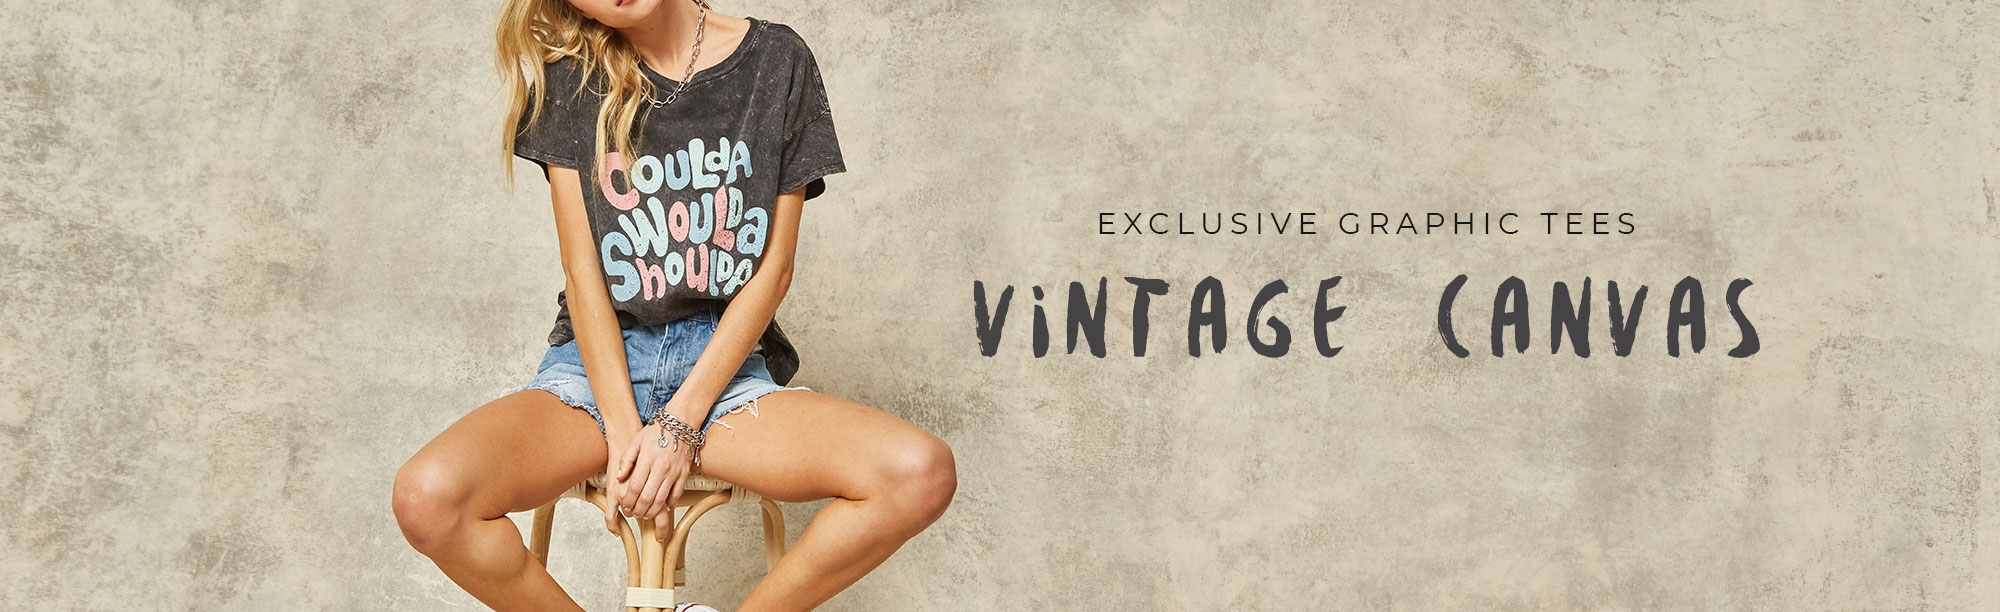 Exclusive Graphic Tees